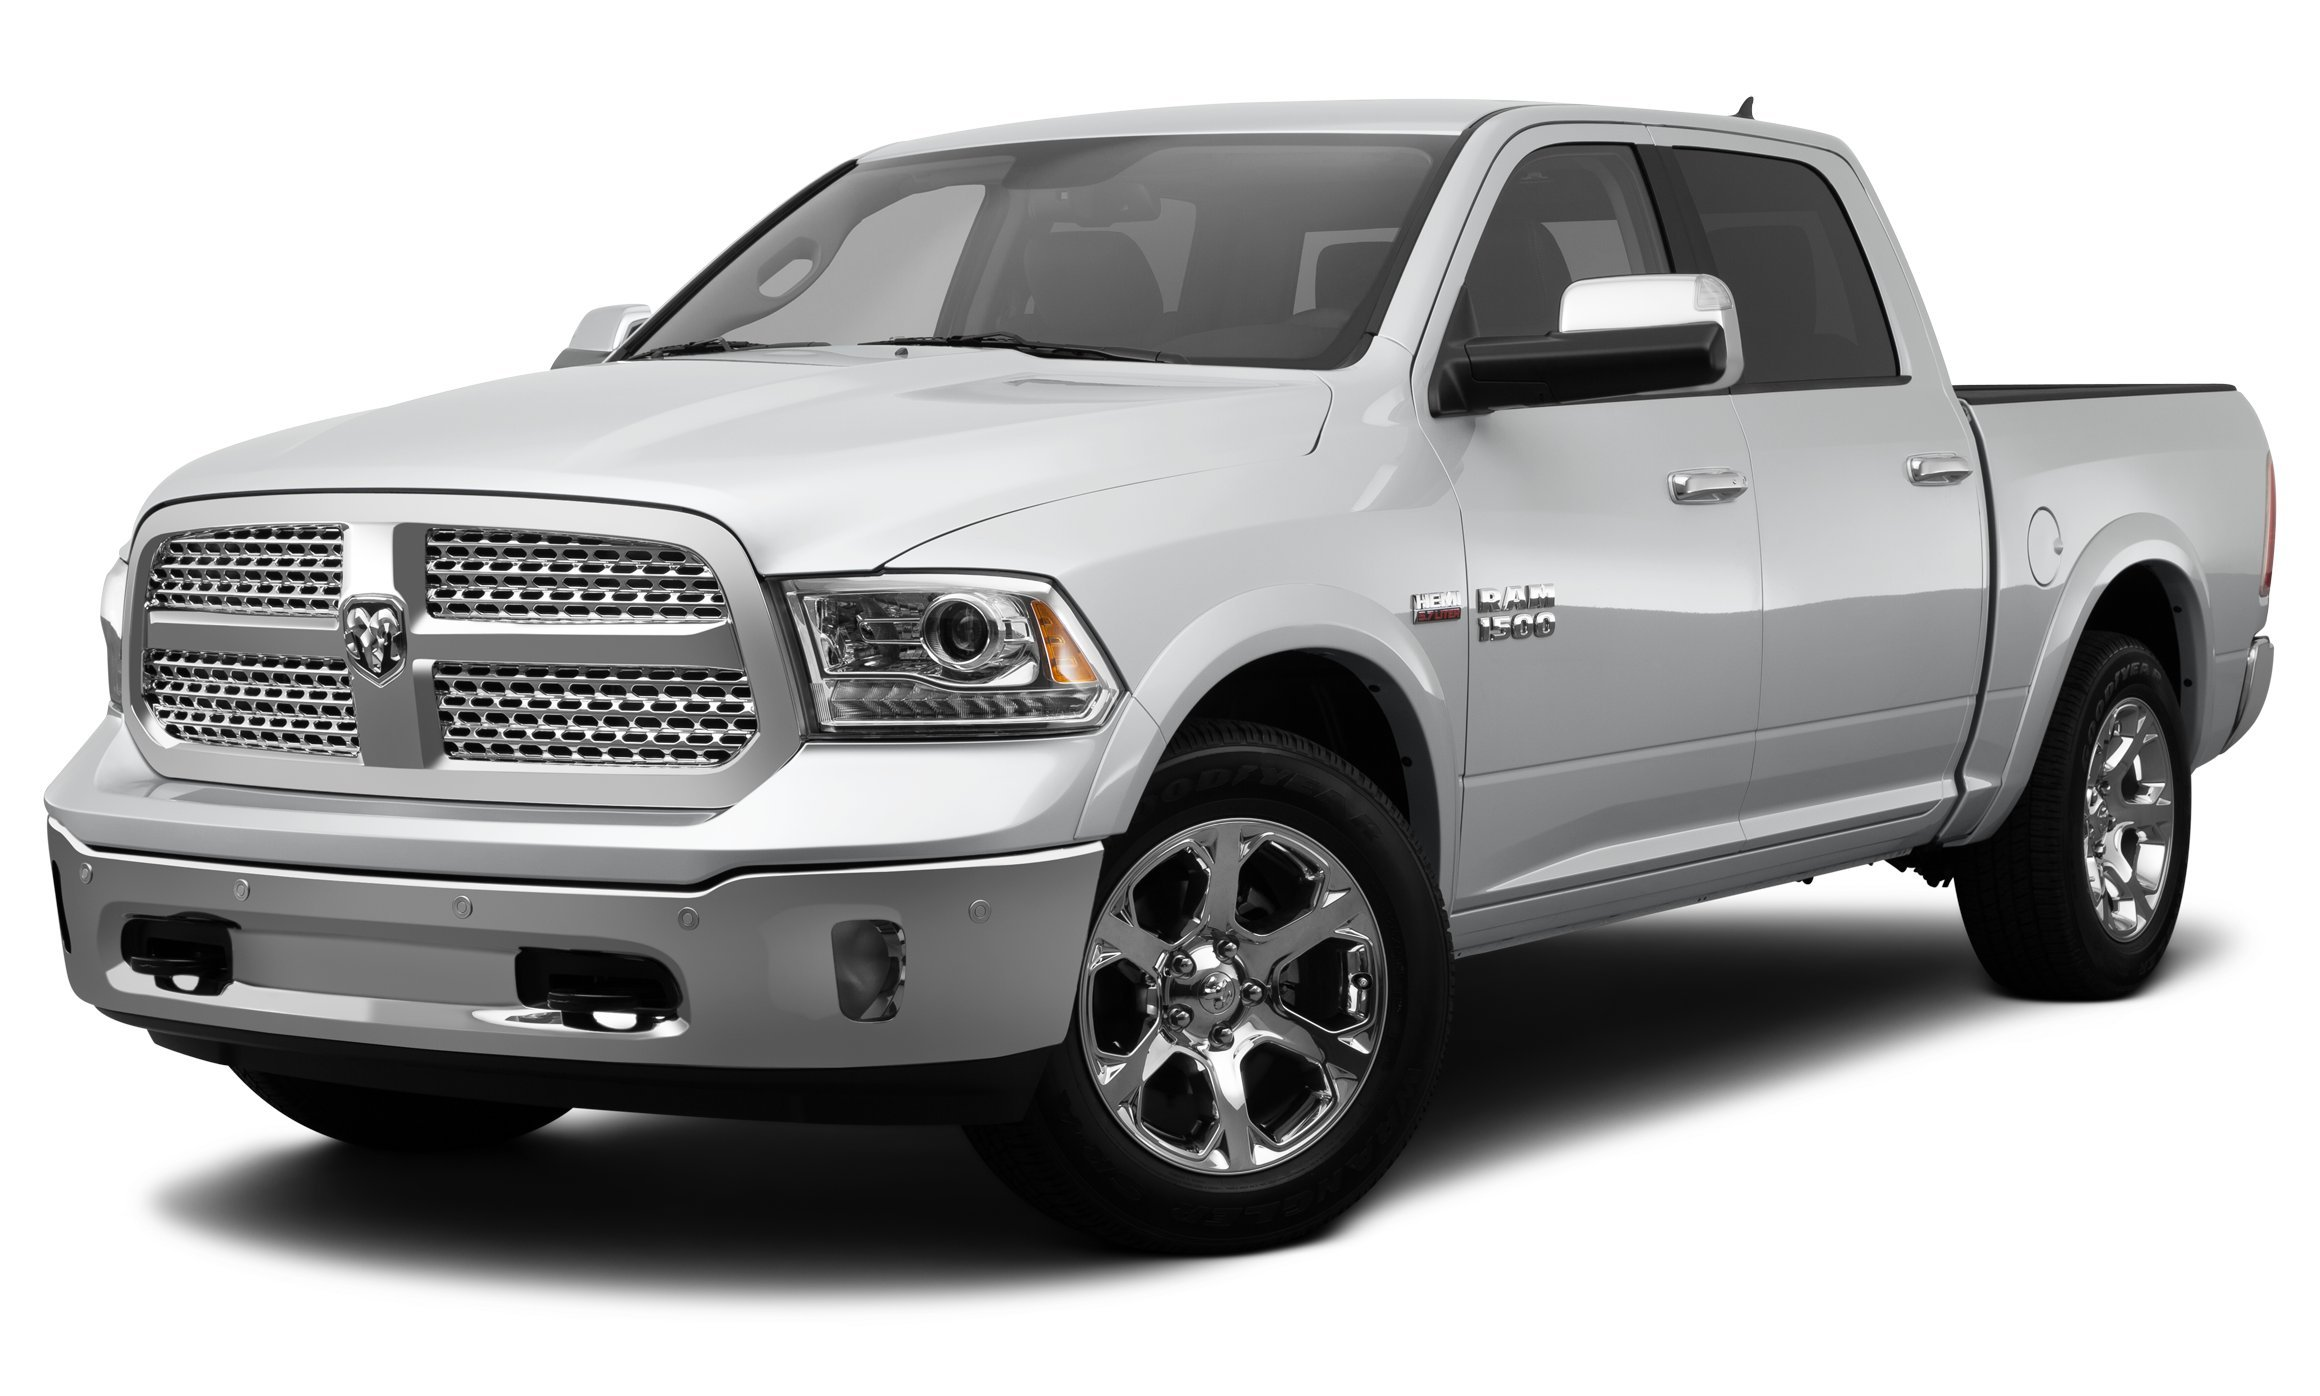 2015 gmc sierra 1500 reviews images and specs vehicles. Black Bedroom Furniture Sets. Home Design Ideas